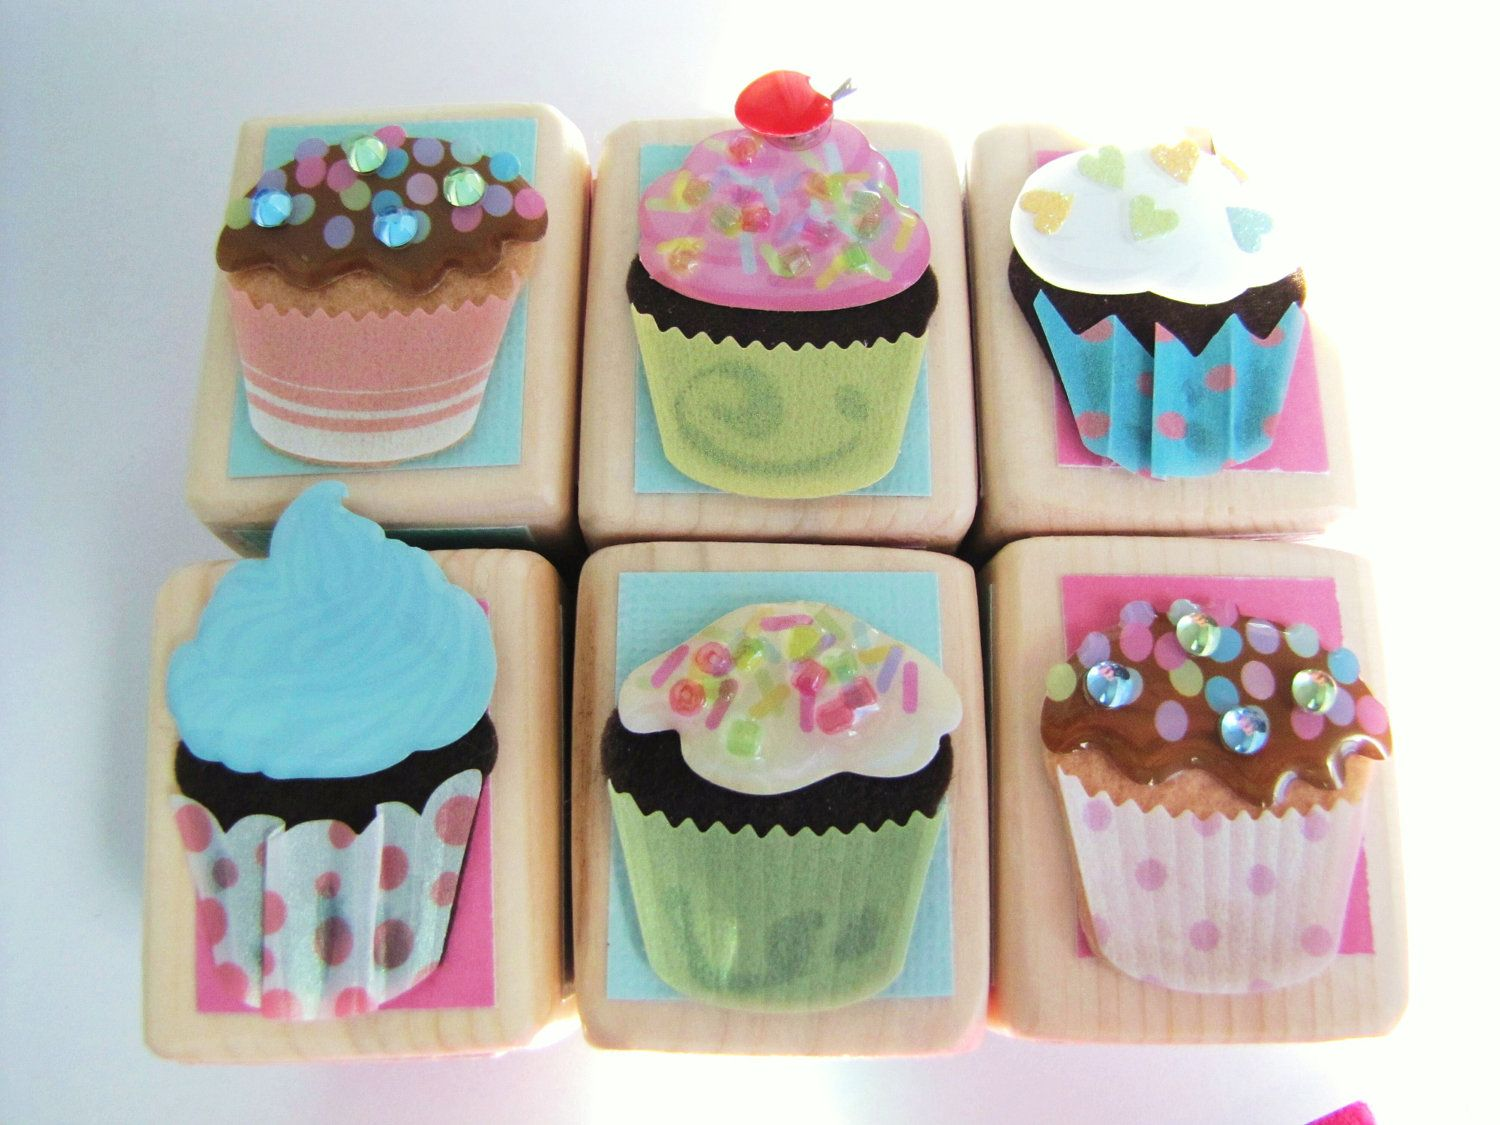 Cupcake Baby Shower Decor Wood Blocks Spring Nursery Room Pink Sparkly Fun Toy Party Decoration